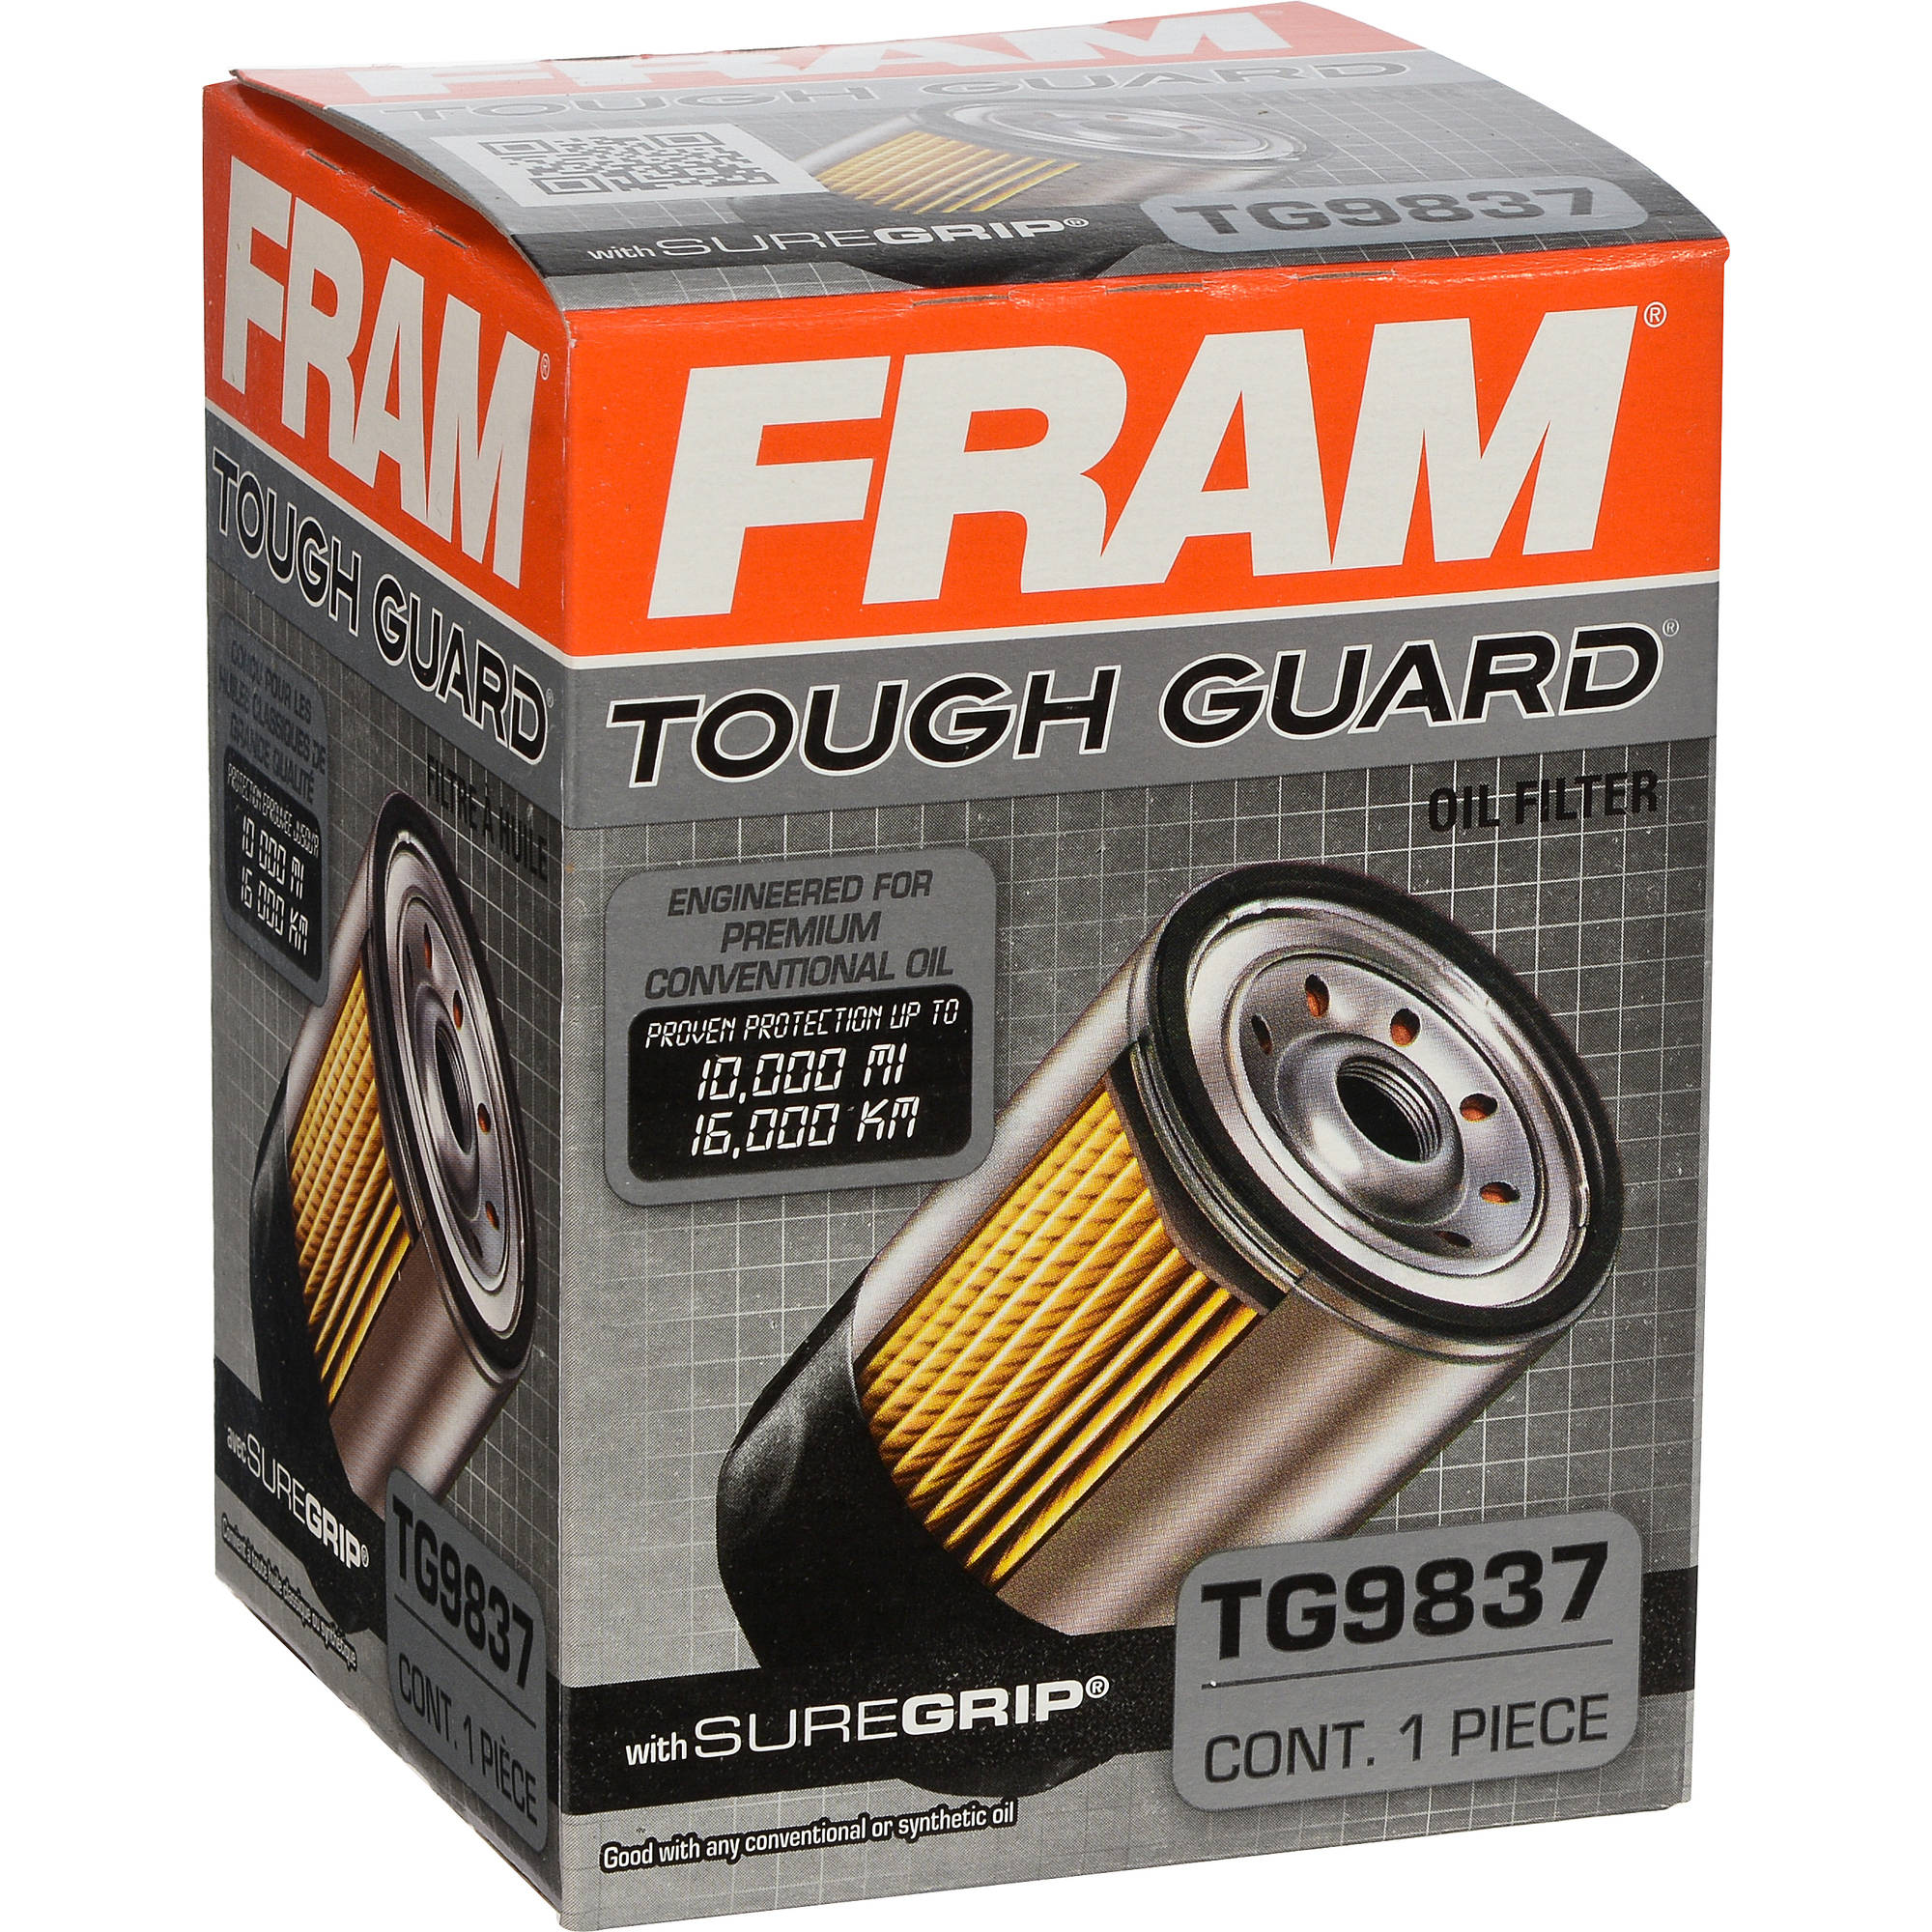 FRAM Tough Guard Oil Filter, TG9837